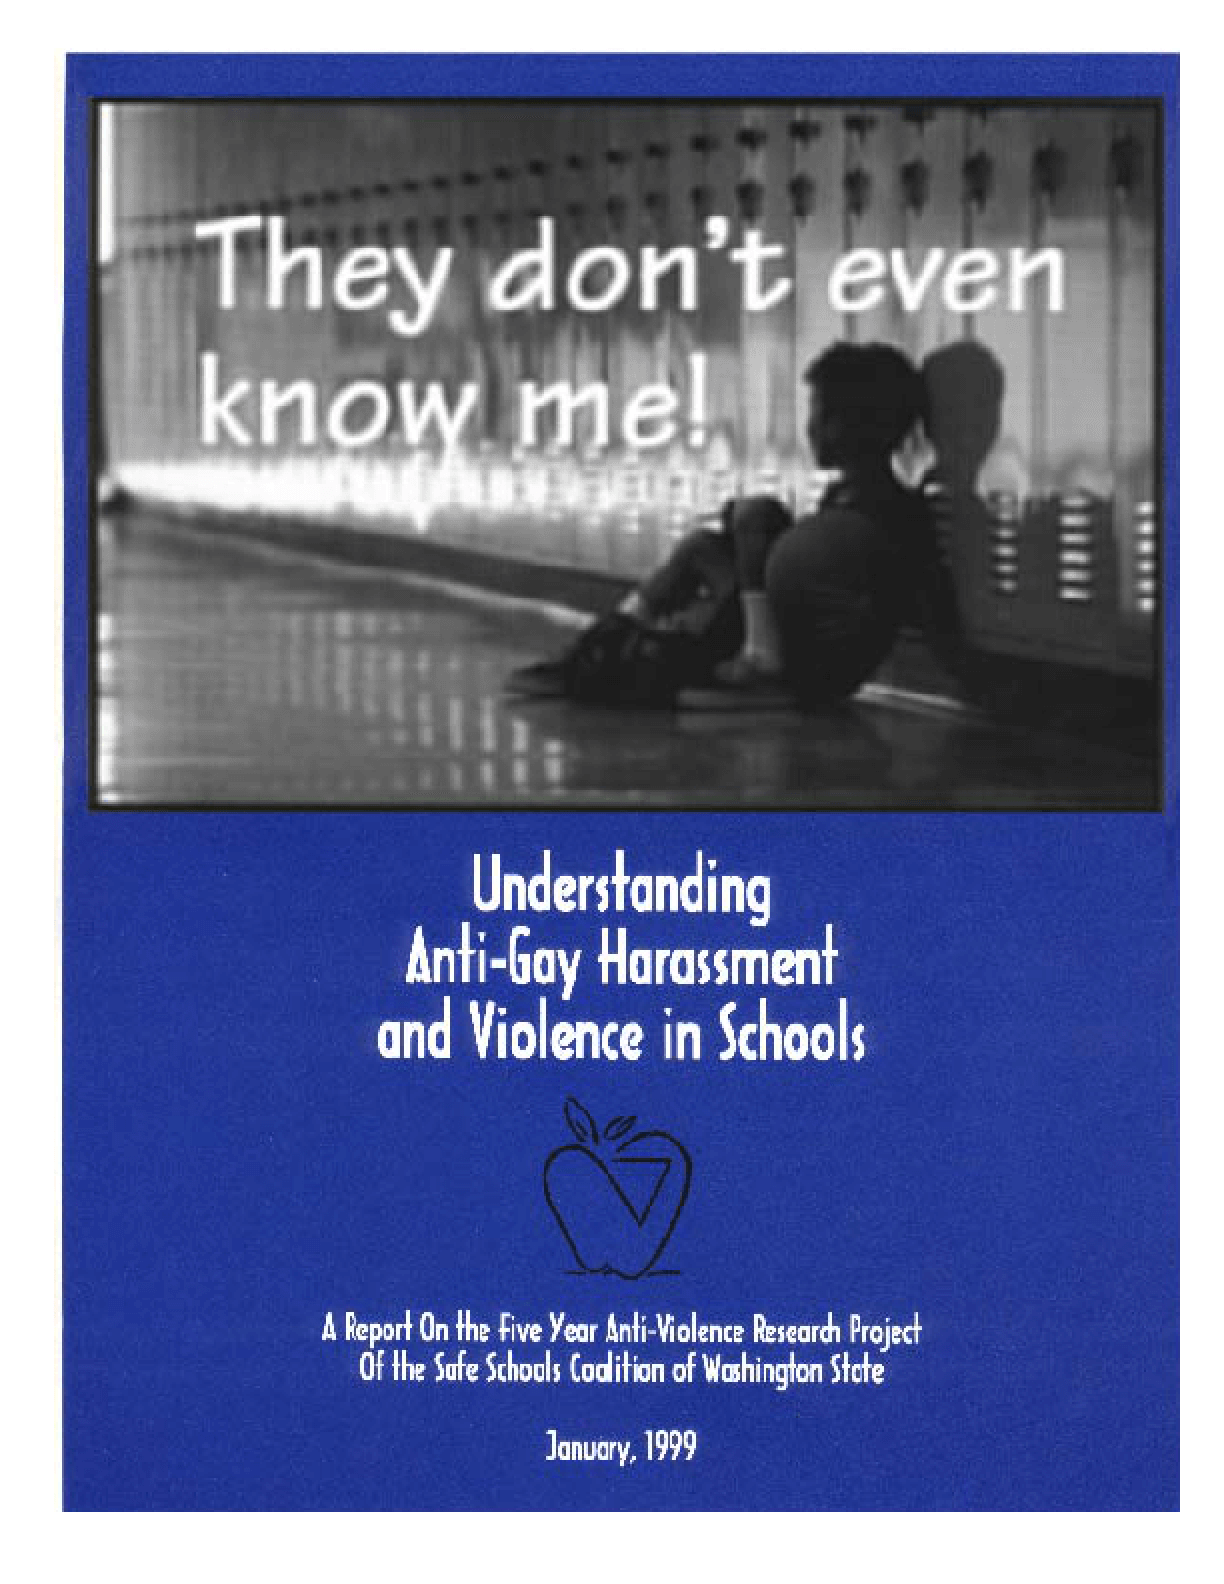 They Don't Even Know Me! Understanding Anti-Gay Harassment and Violence in Schools